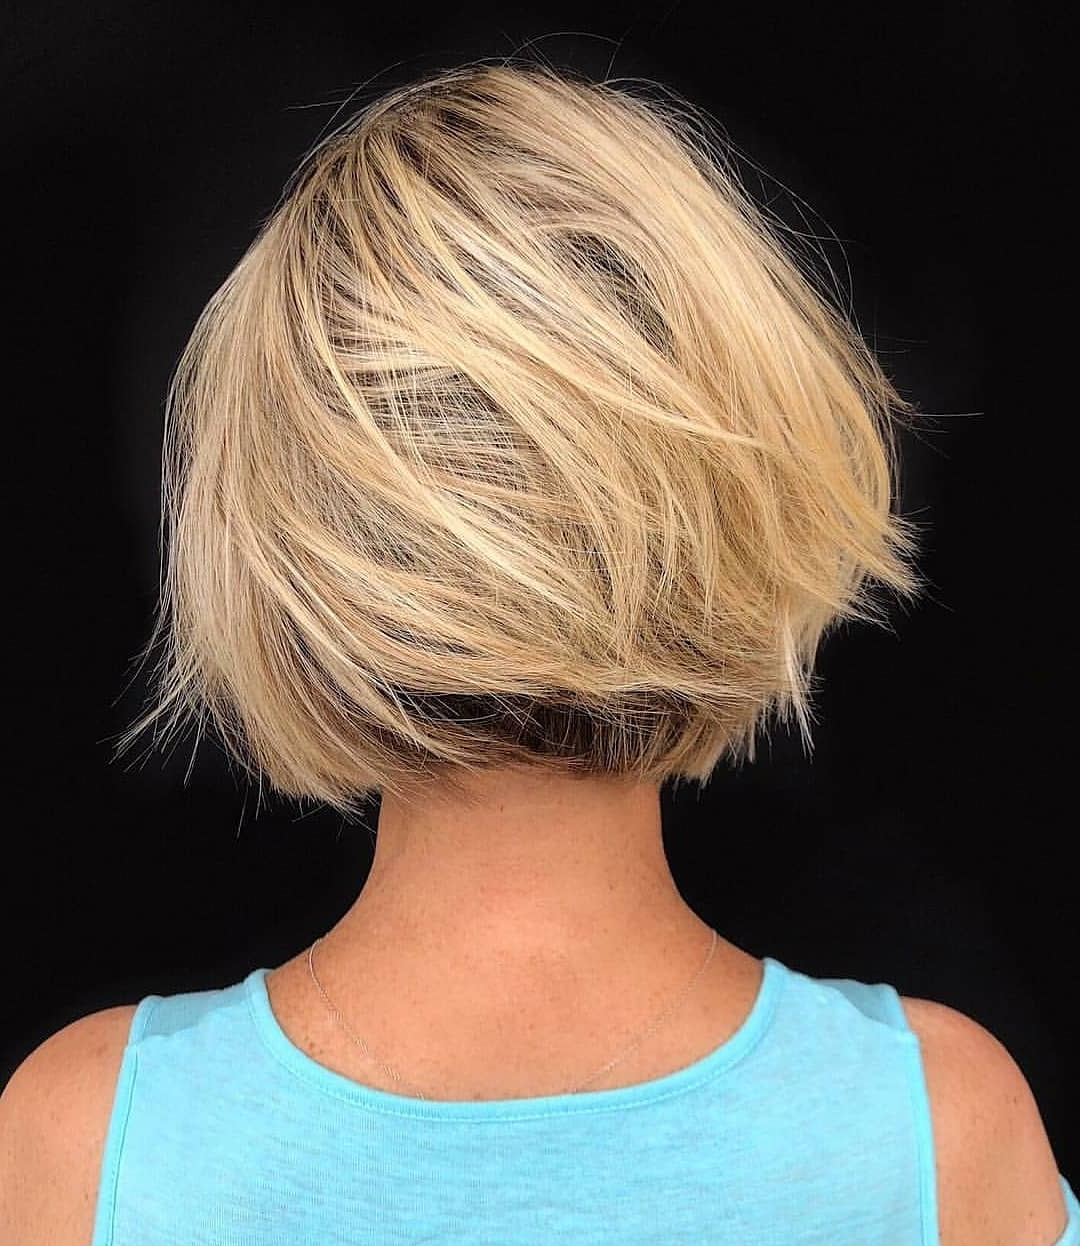 20 Ideas of Choppy Wispy Blonde Balayage Bob Hairstyles